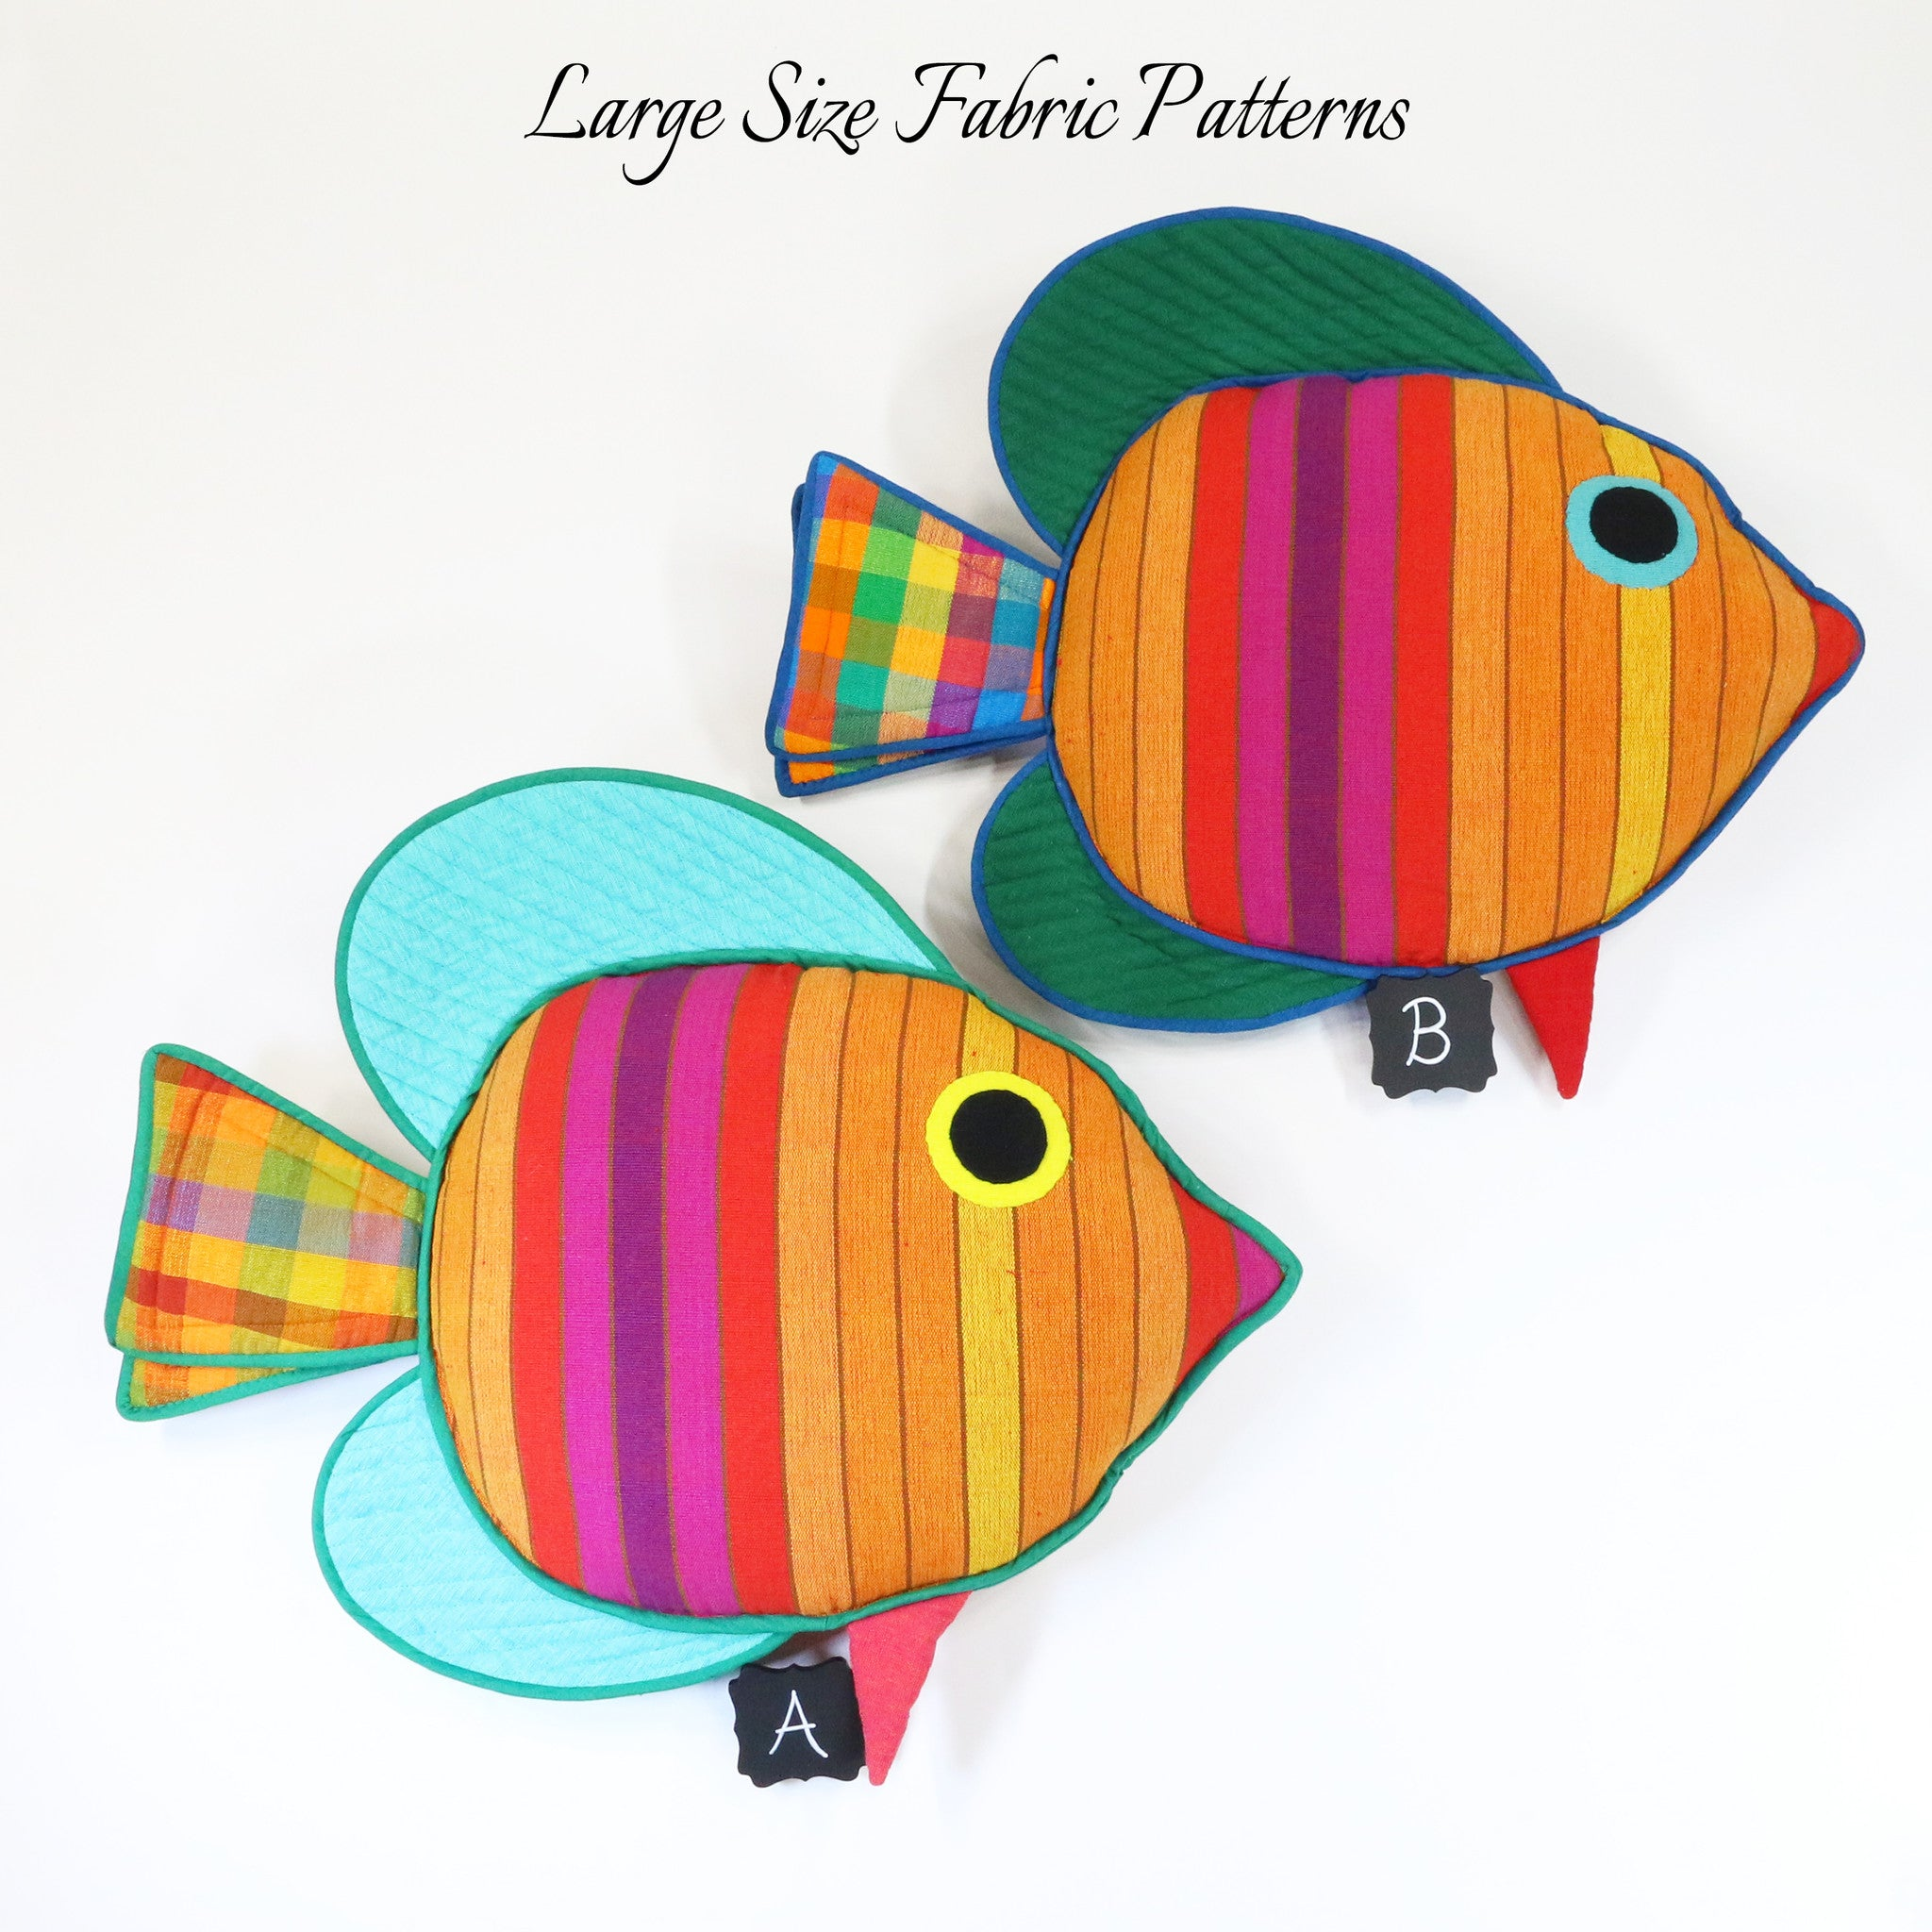 Gypsy, the Sail Fin Fish – all large size fabric patterns shown